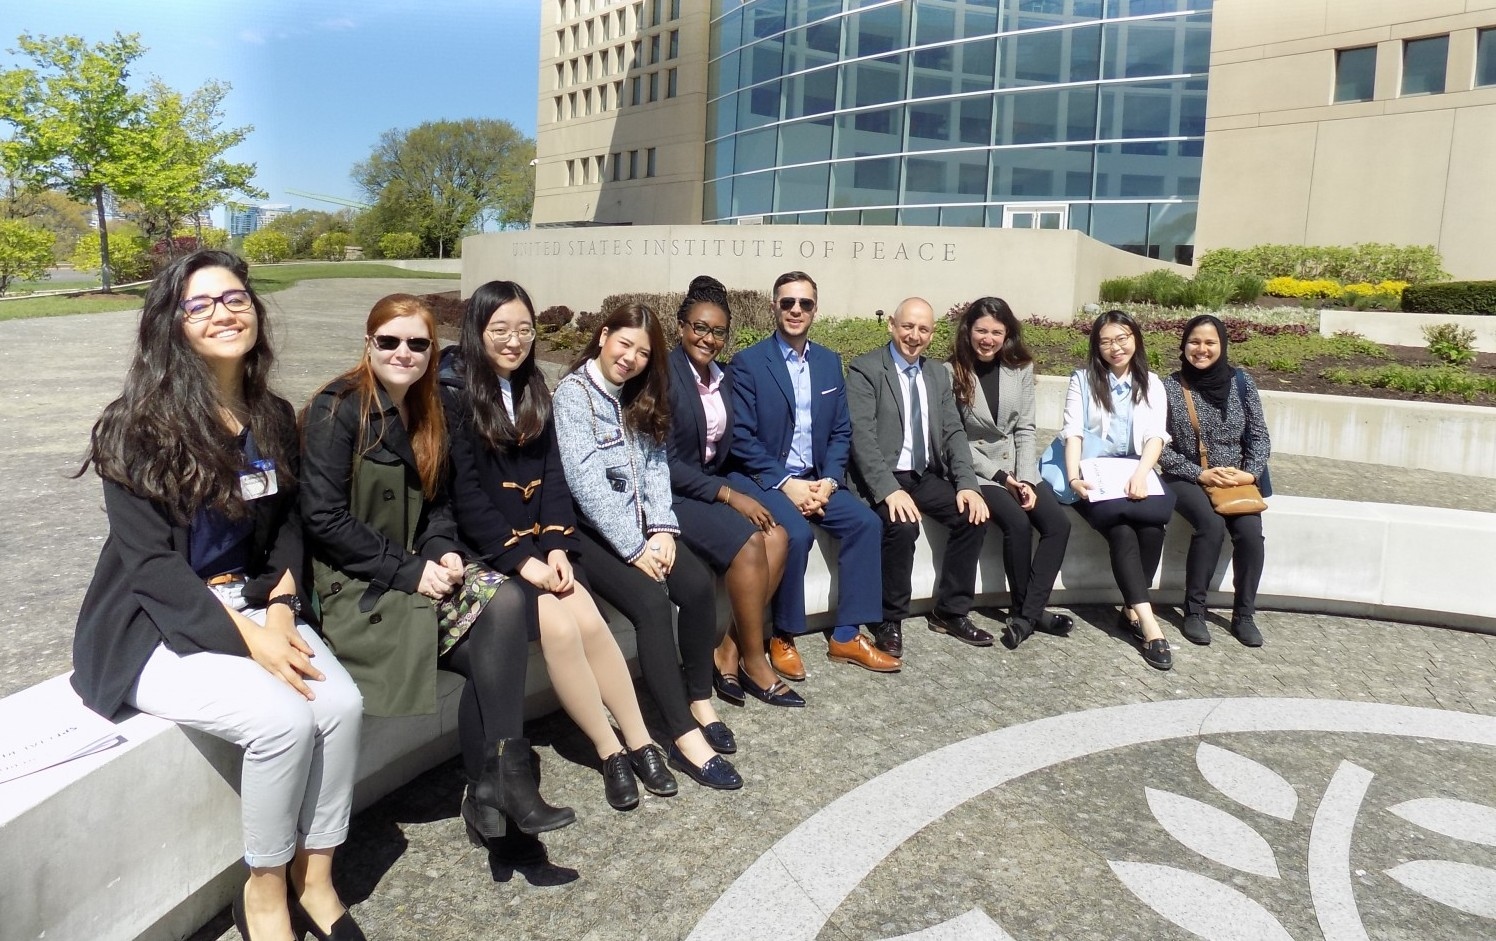 CISD students at the United States Institute of Peace think tank. Washington DC, April 2018